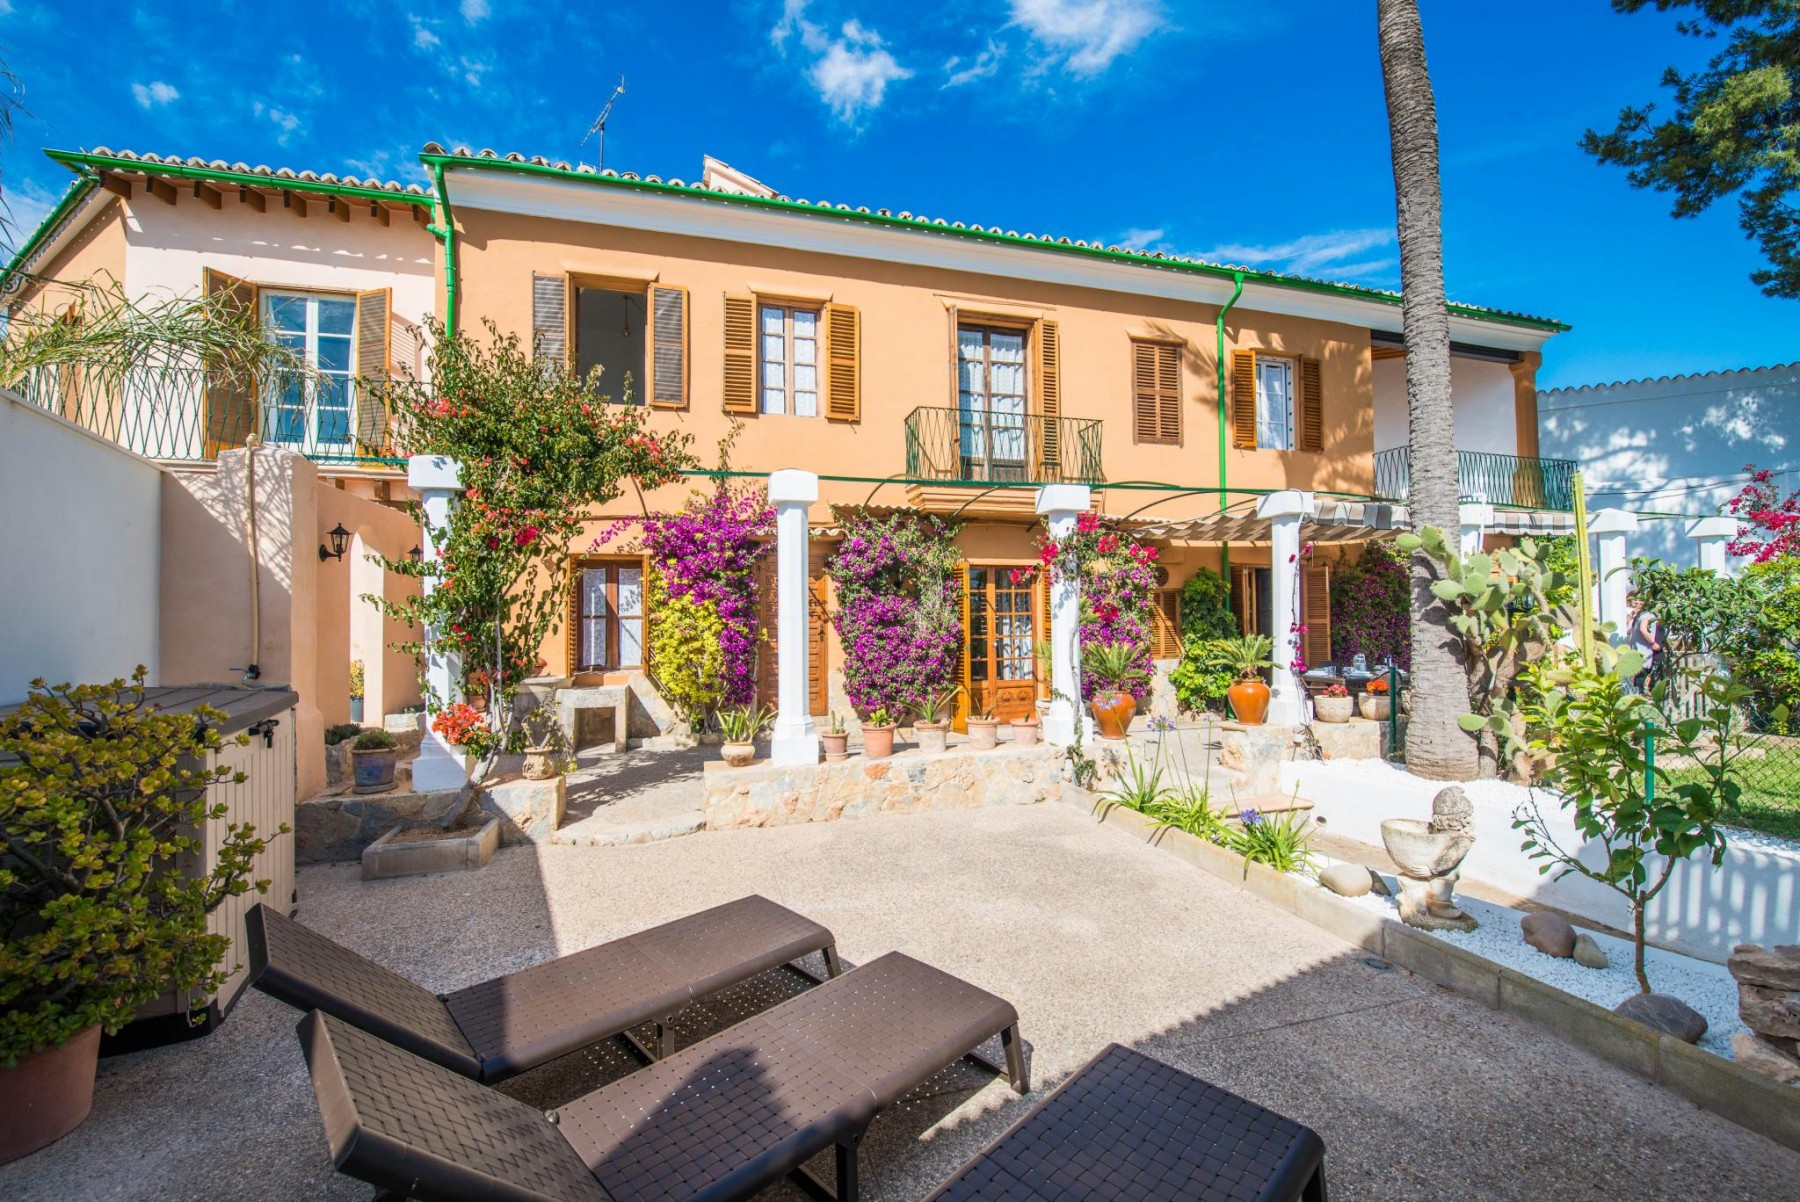 CAN REY DES PLA for 8 guests in Palma de Mallorca, Spain